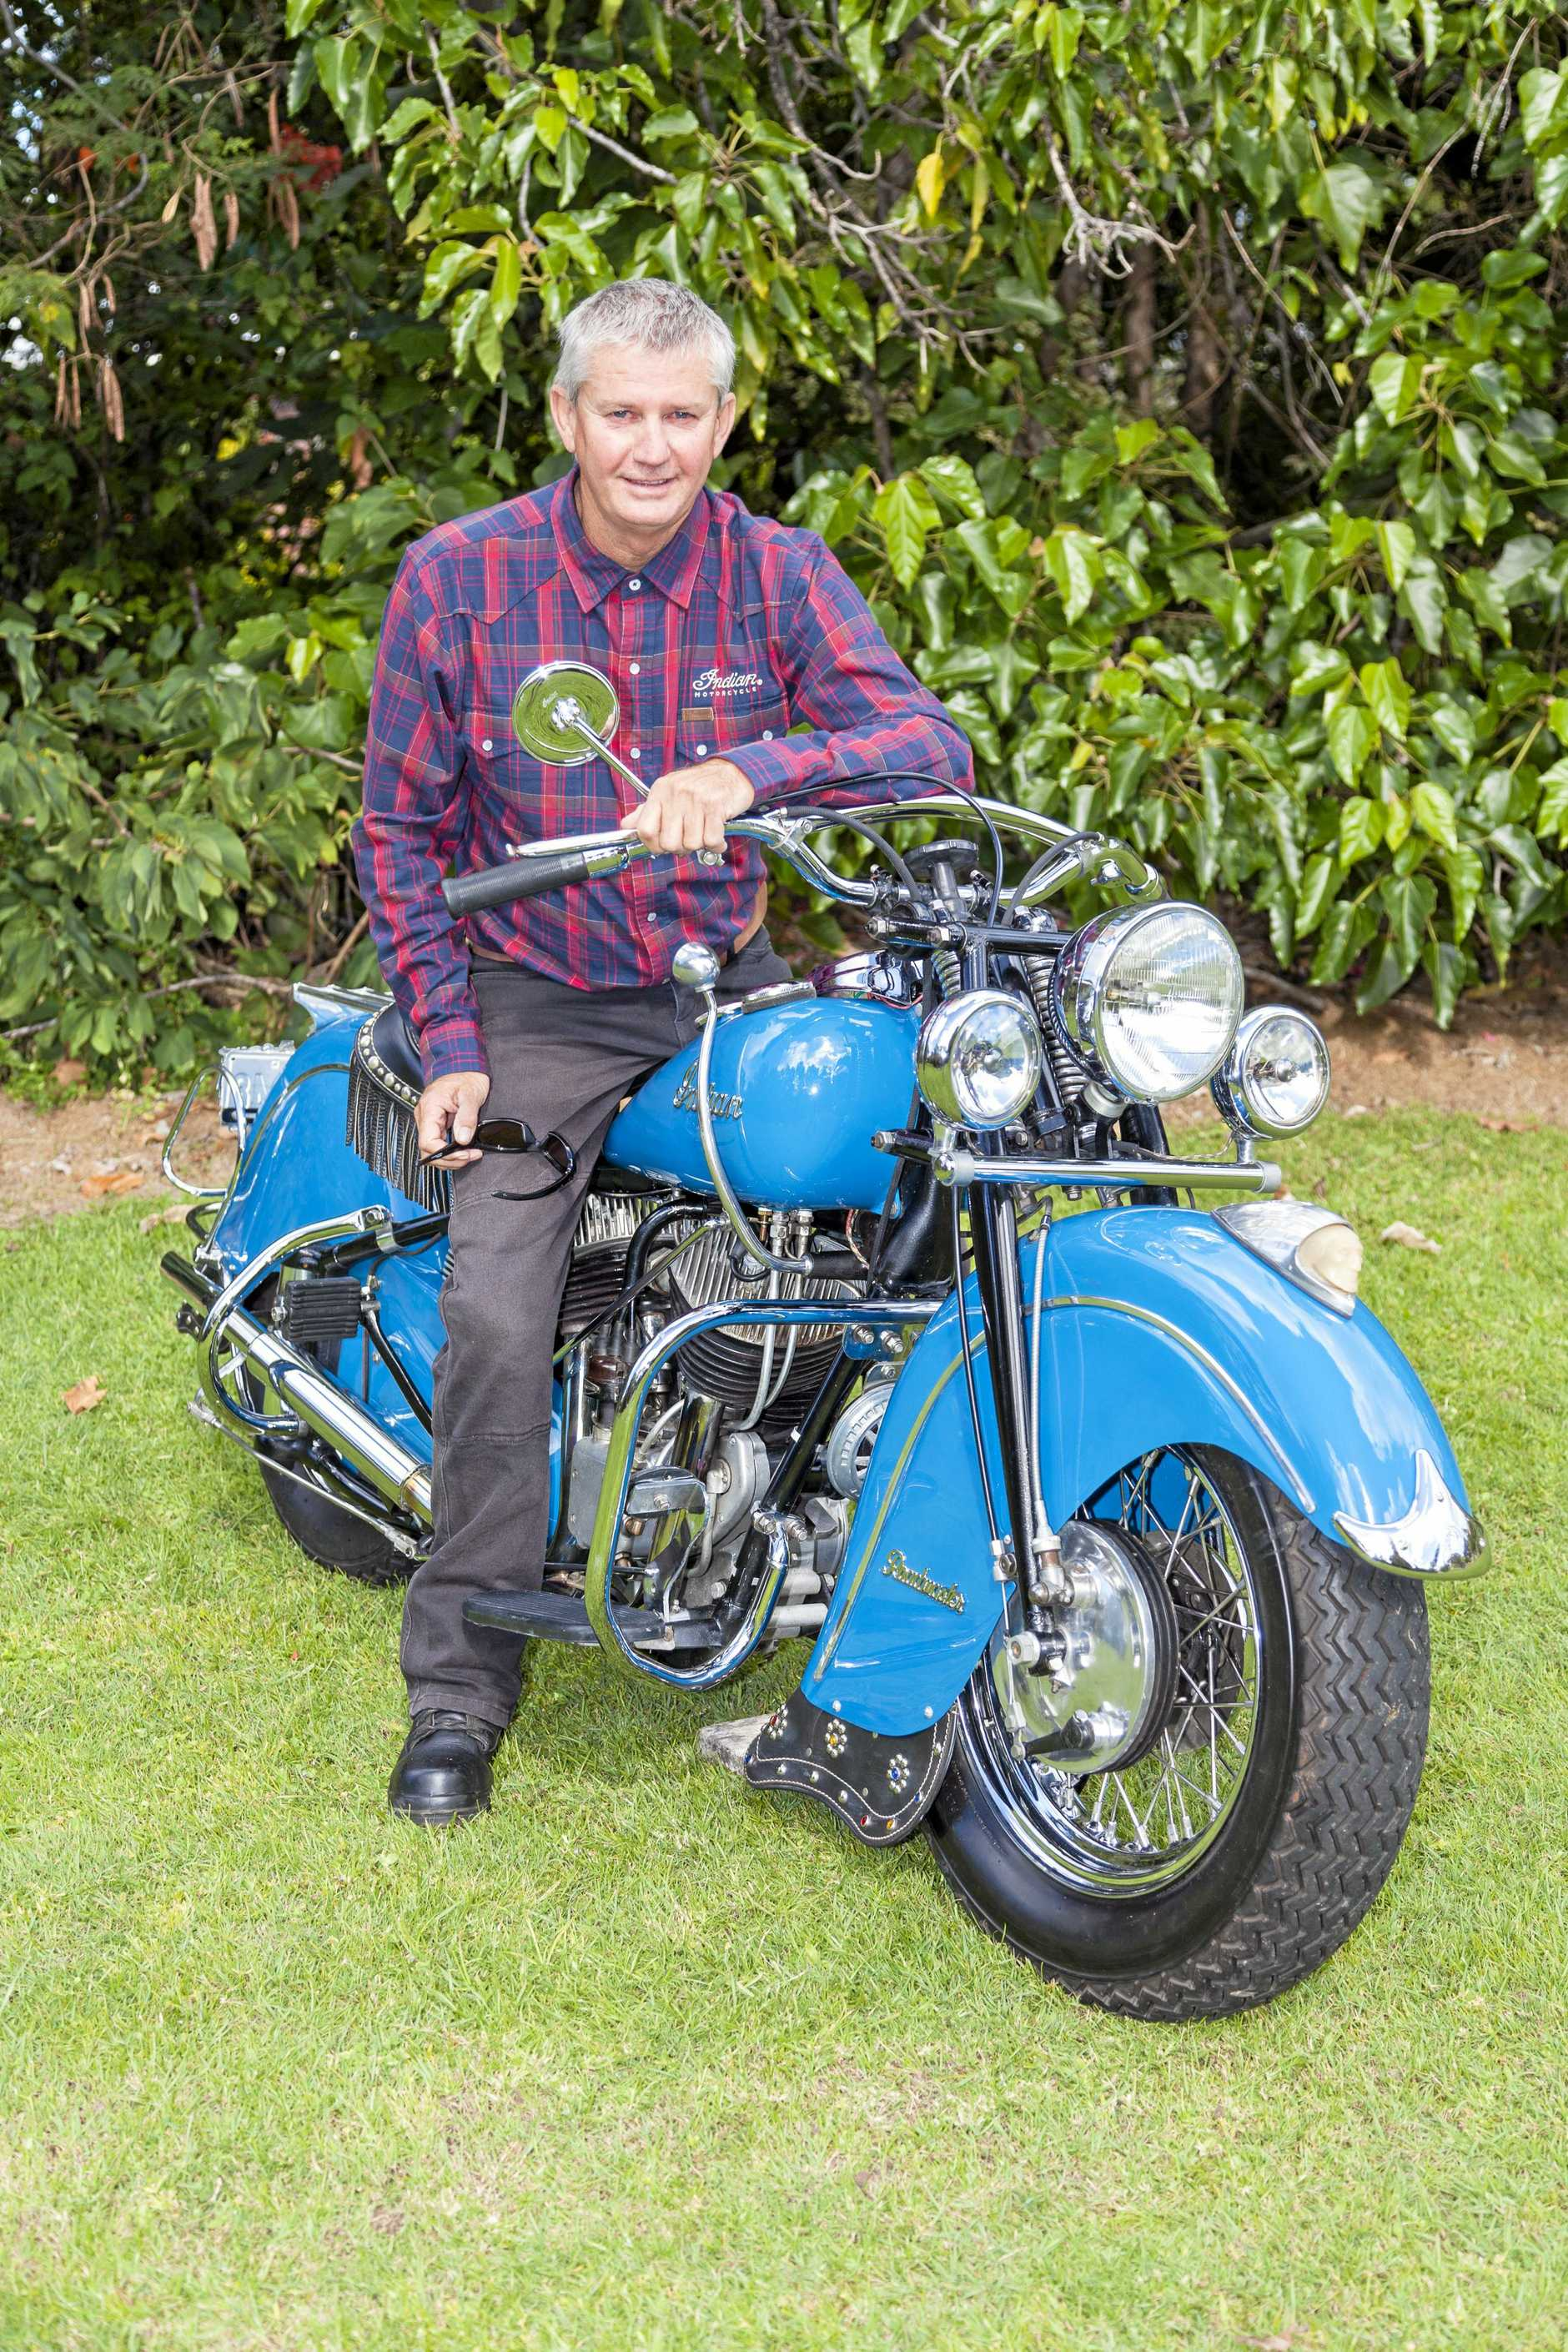 Robert Kerr on his iconic blue 1948 Indian Chief Roadmaster bike in a photoshoot before he died.